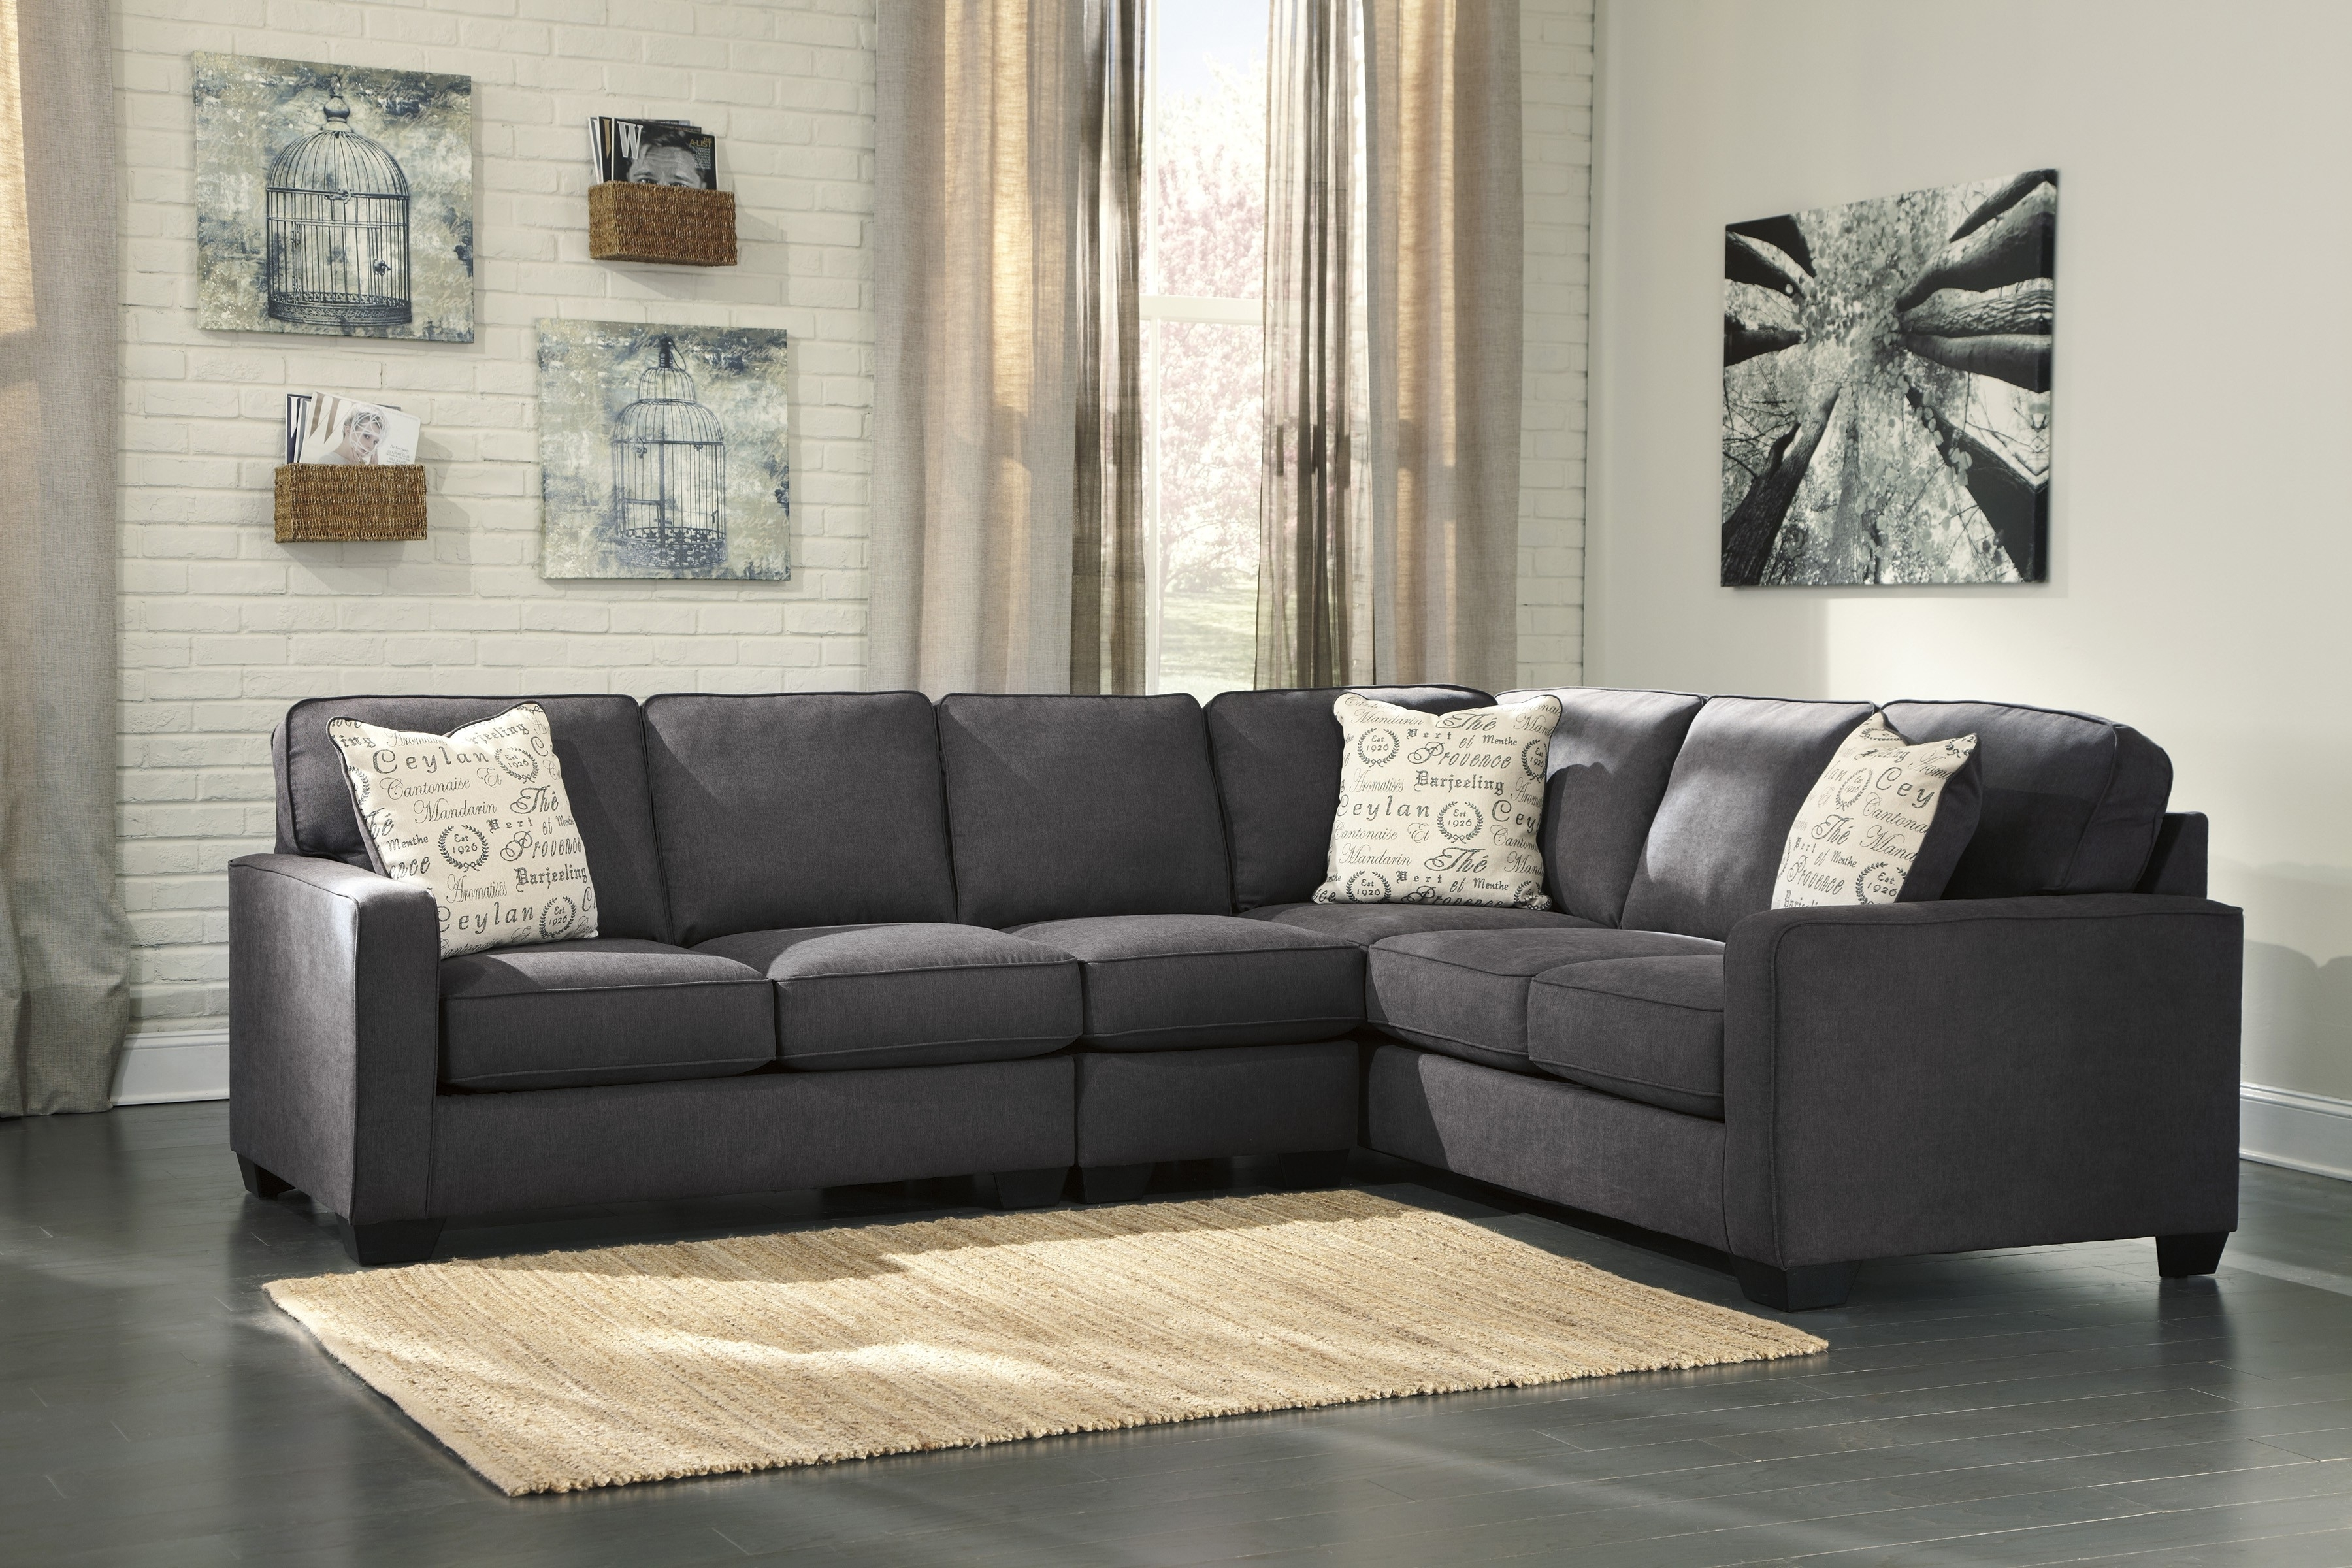 Best And Newest Sectional Sofas That Come In Pieces For Alenya Charcoal 3 Piece Sectional Sofa For $ (View 9 of 15)